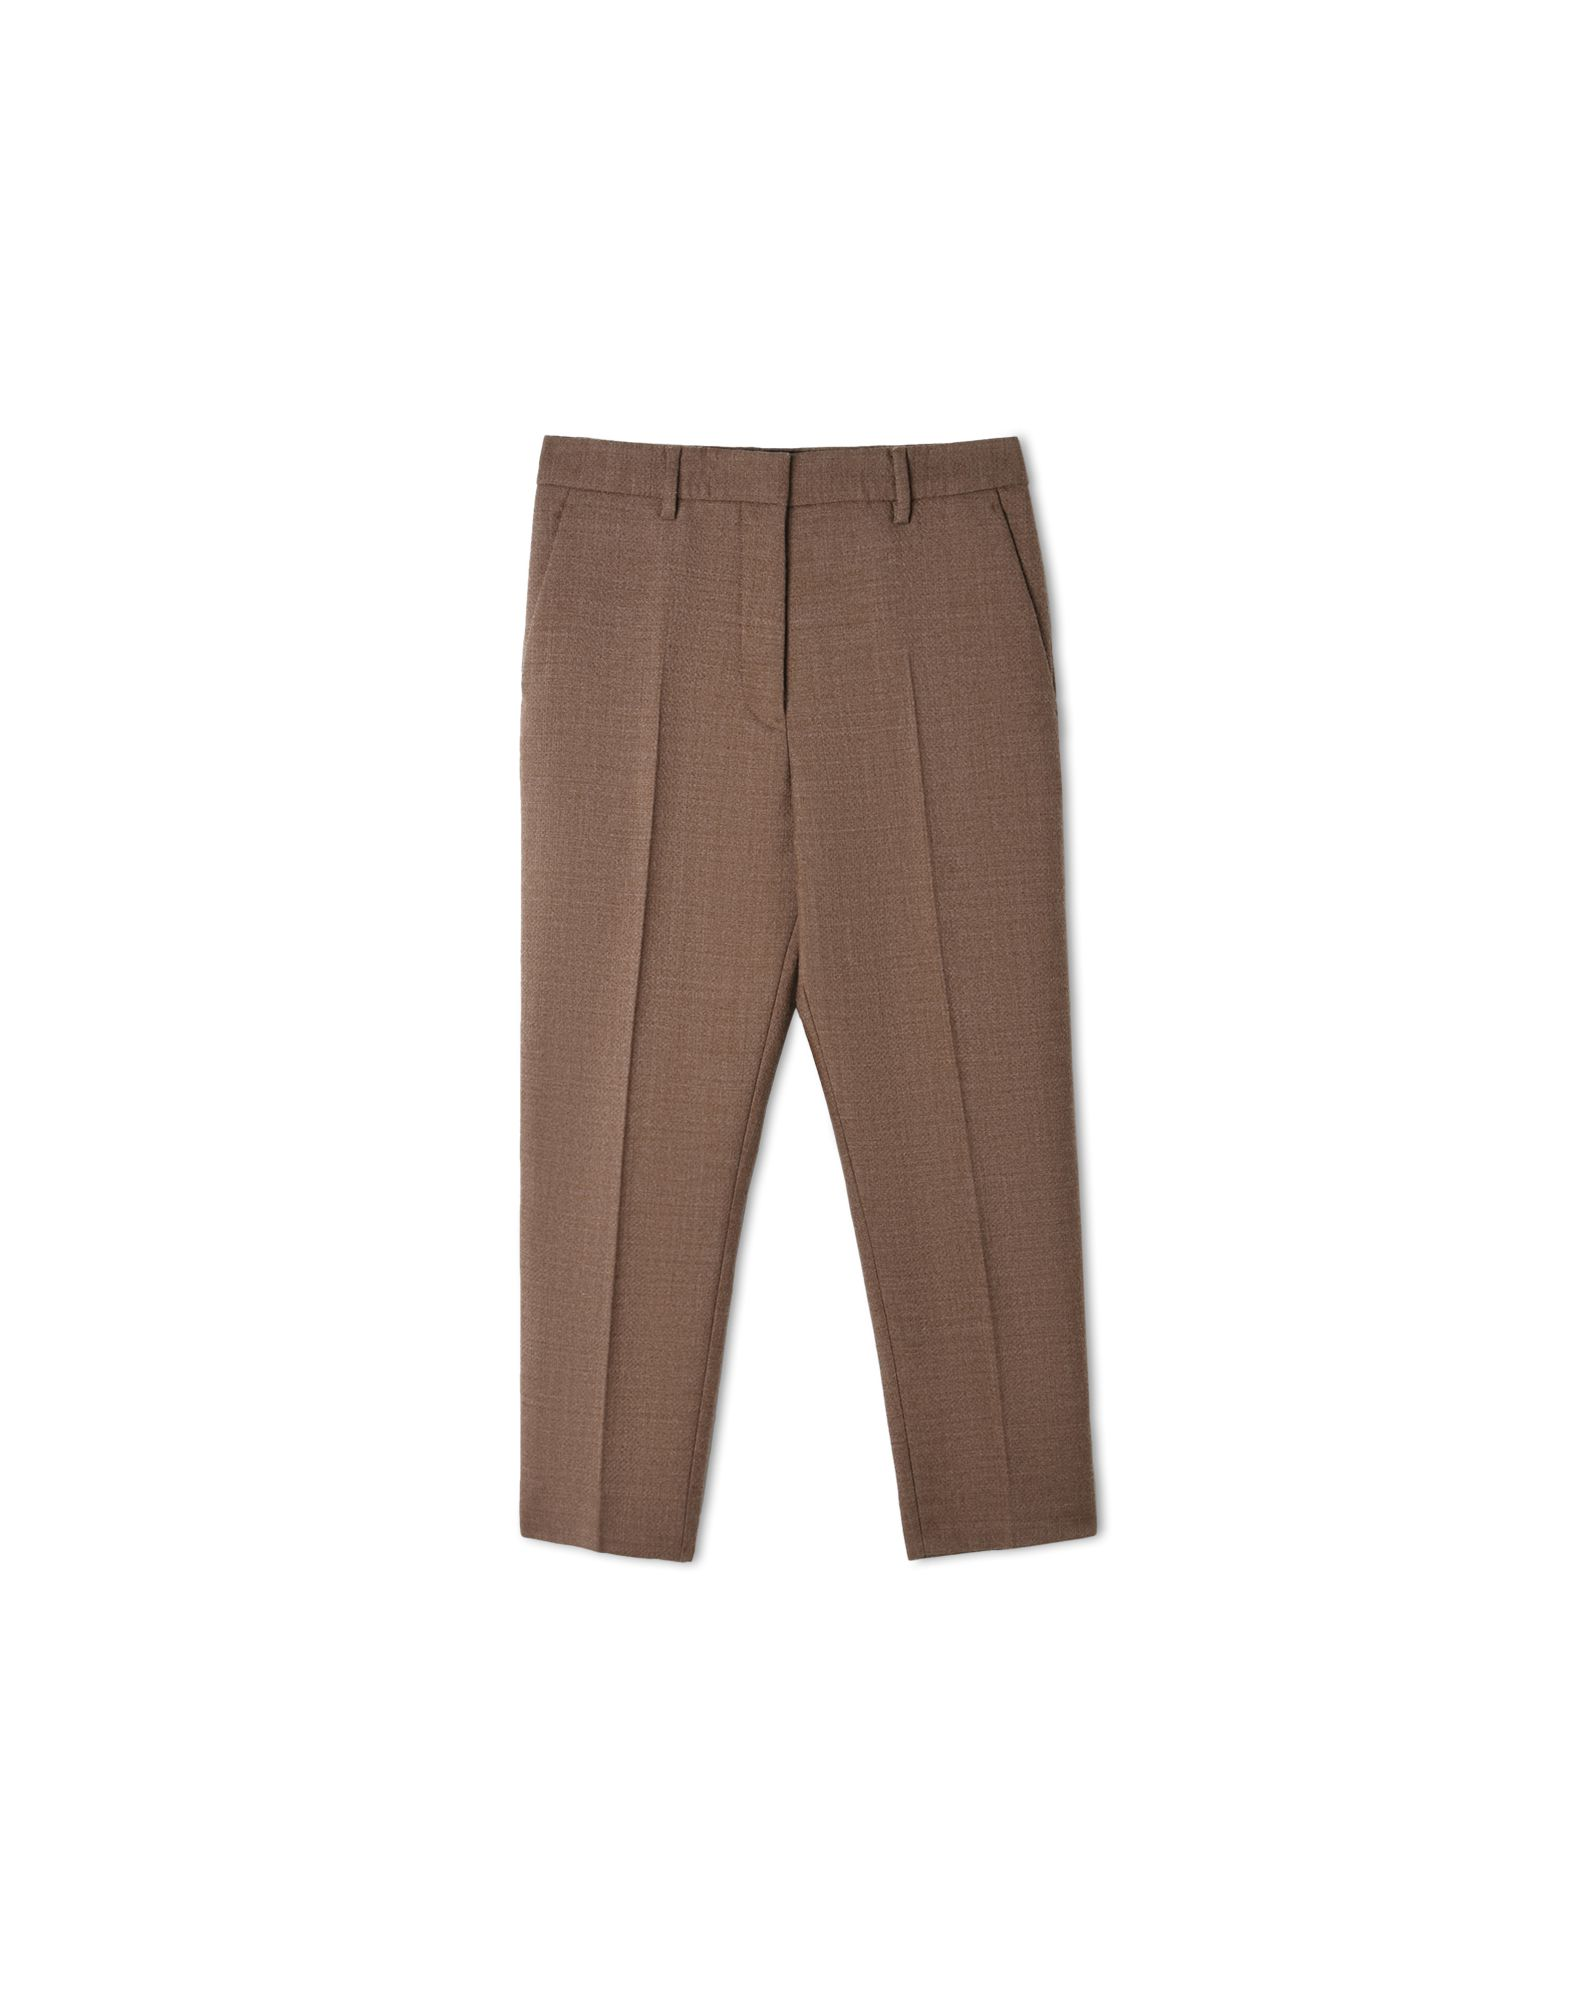 TAILORED PANTS - BEIGE